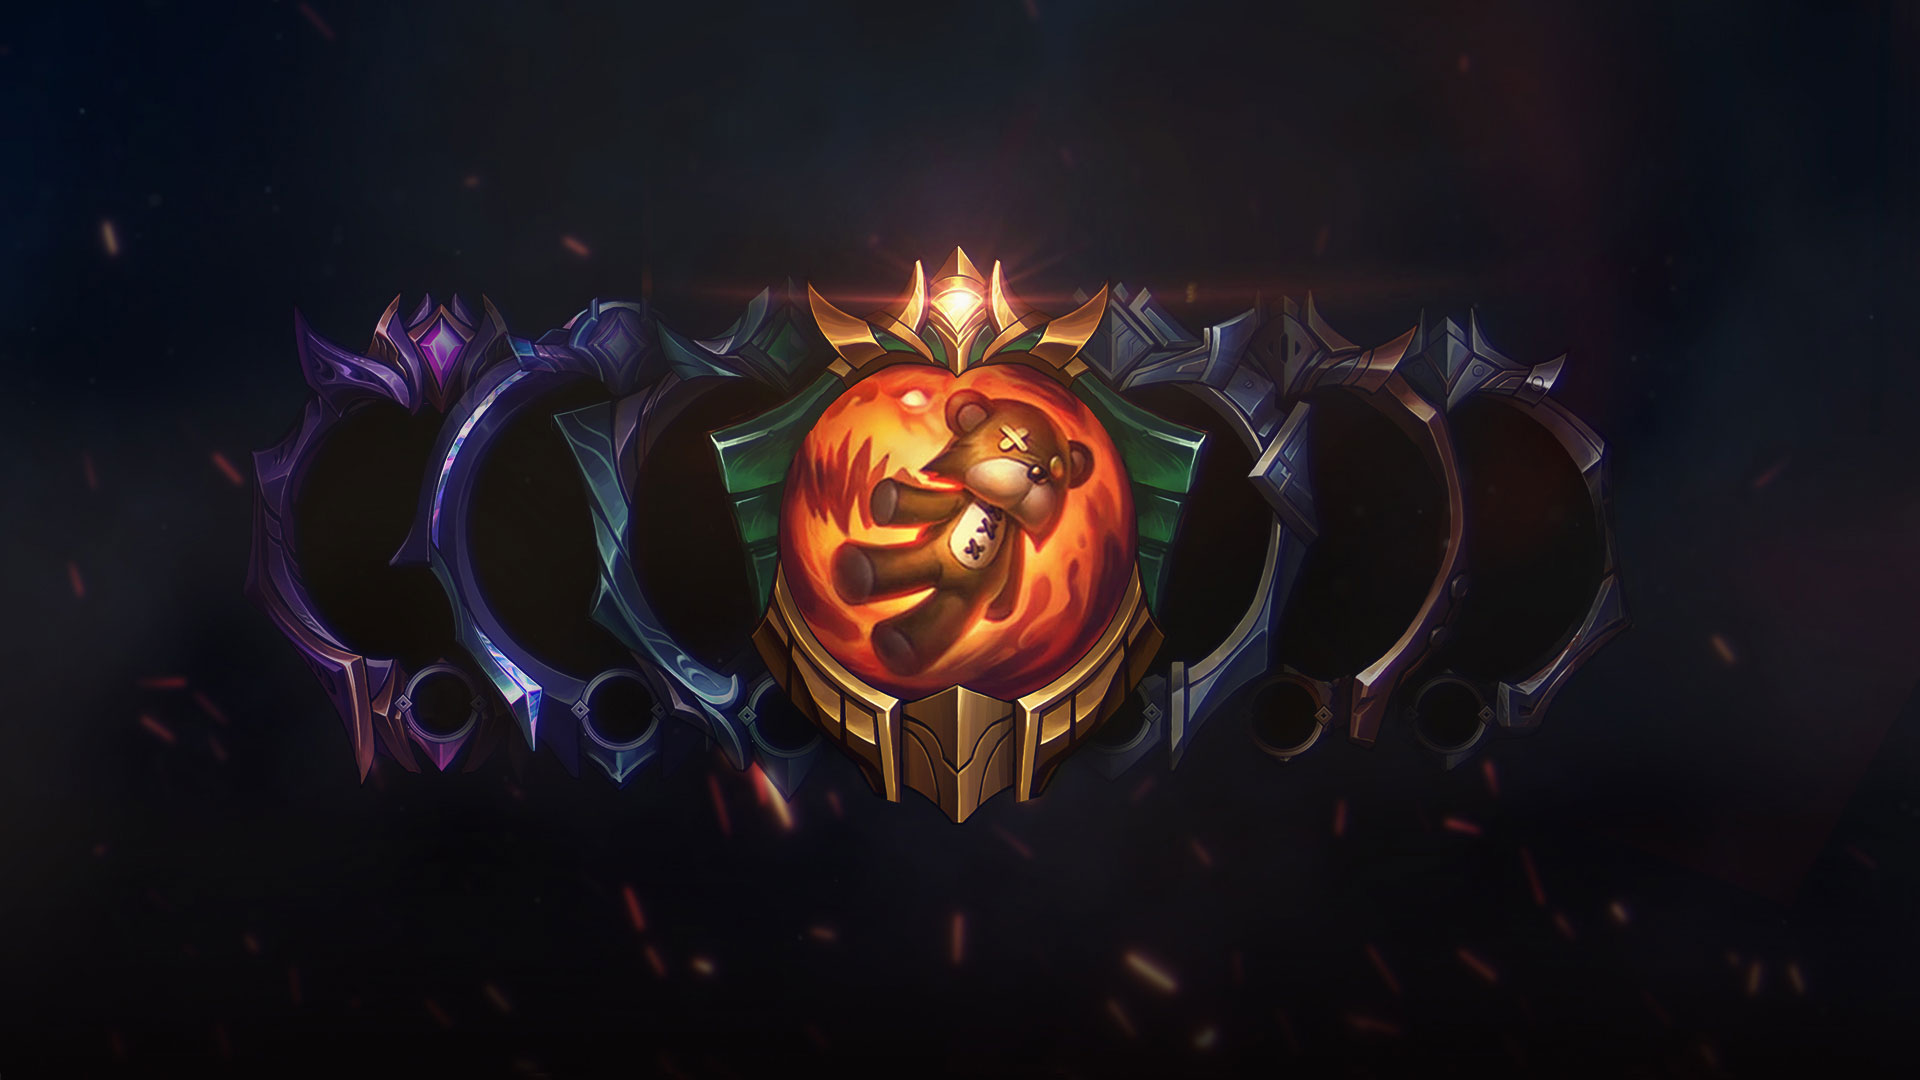 League Of Legends Halloween 2020 dev: Updates on 2020 Ranked & Matchmaking   League of Legends